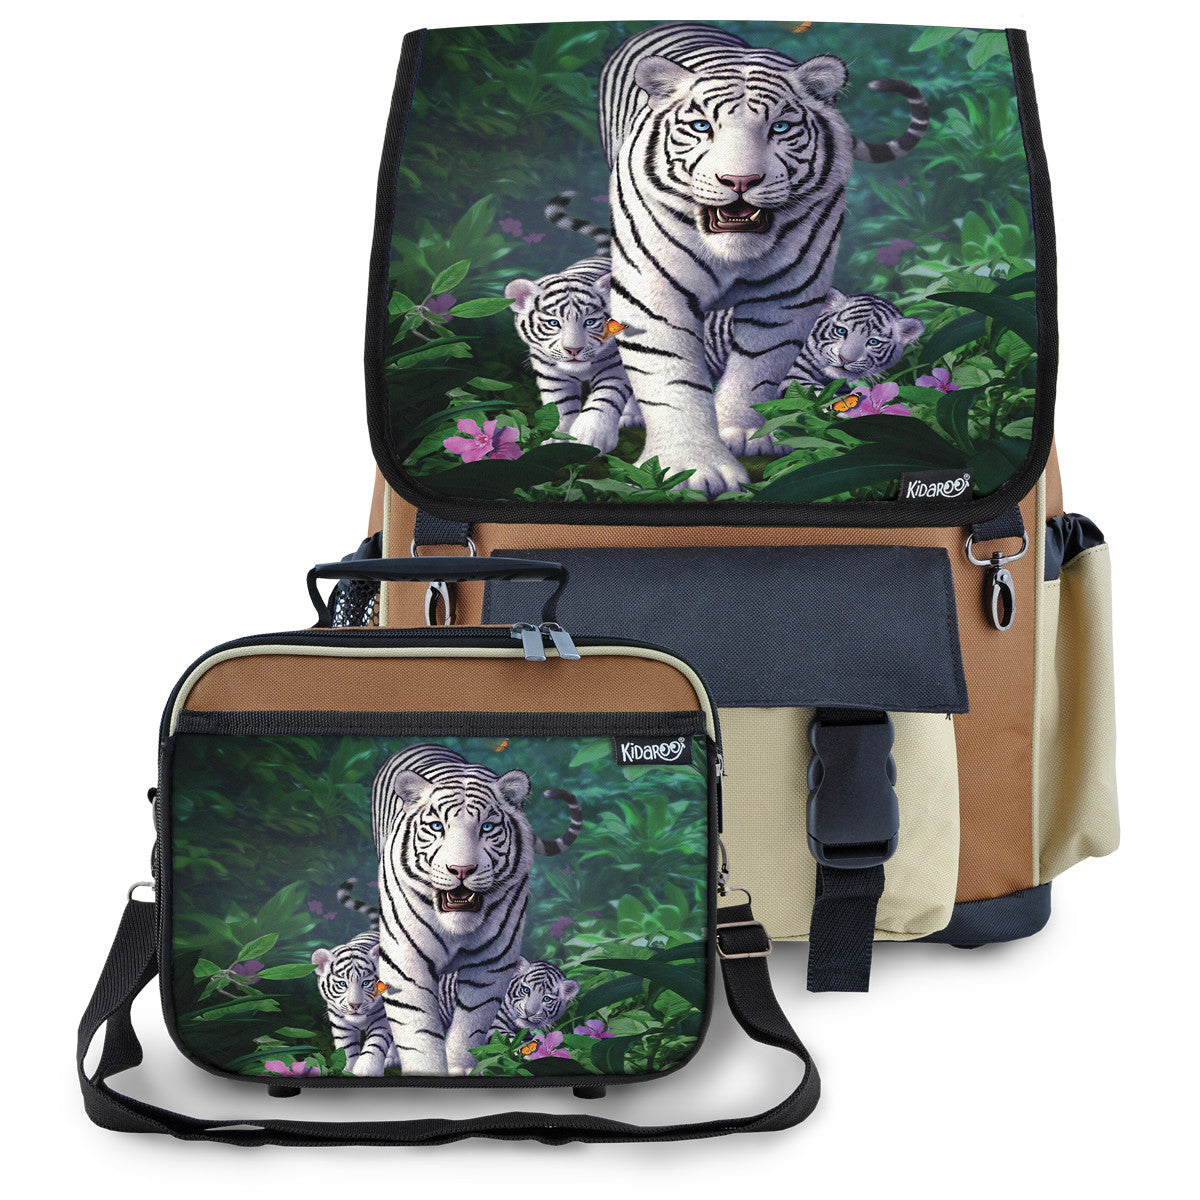 Kidaroo Brown White Tiger & Cubs School Backpack & Lunchbox Set for Boys, Girls, Kids